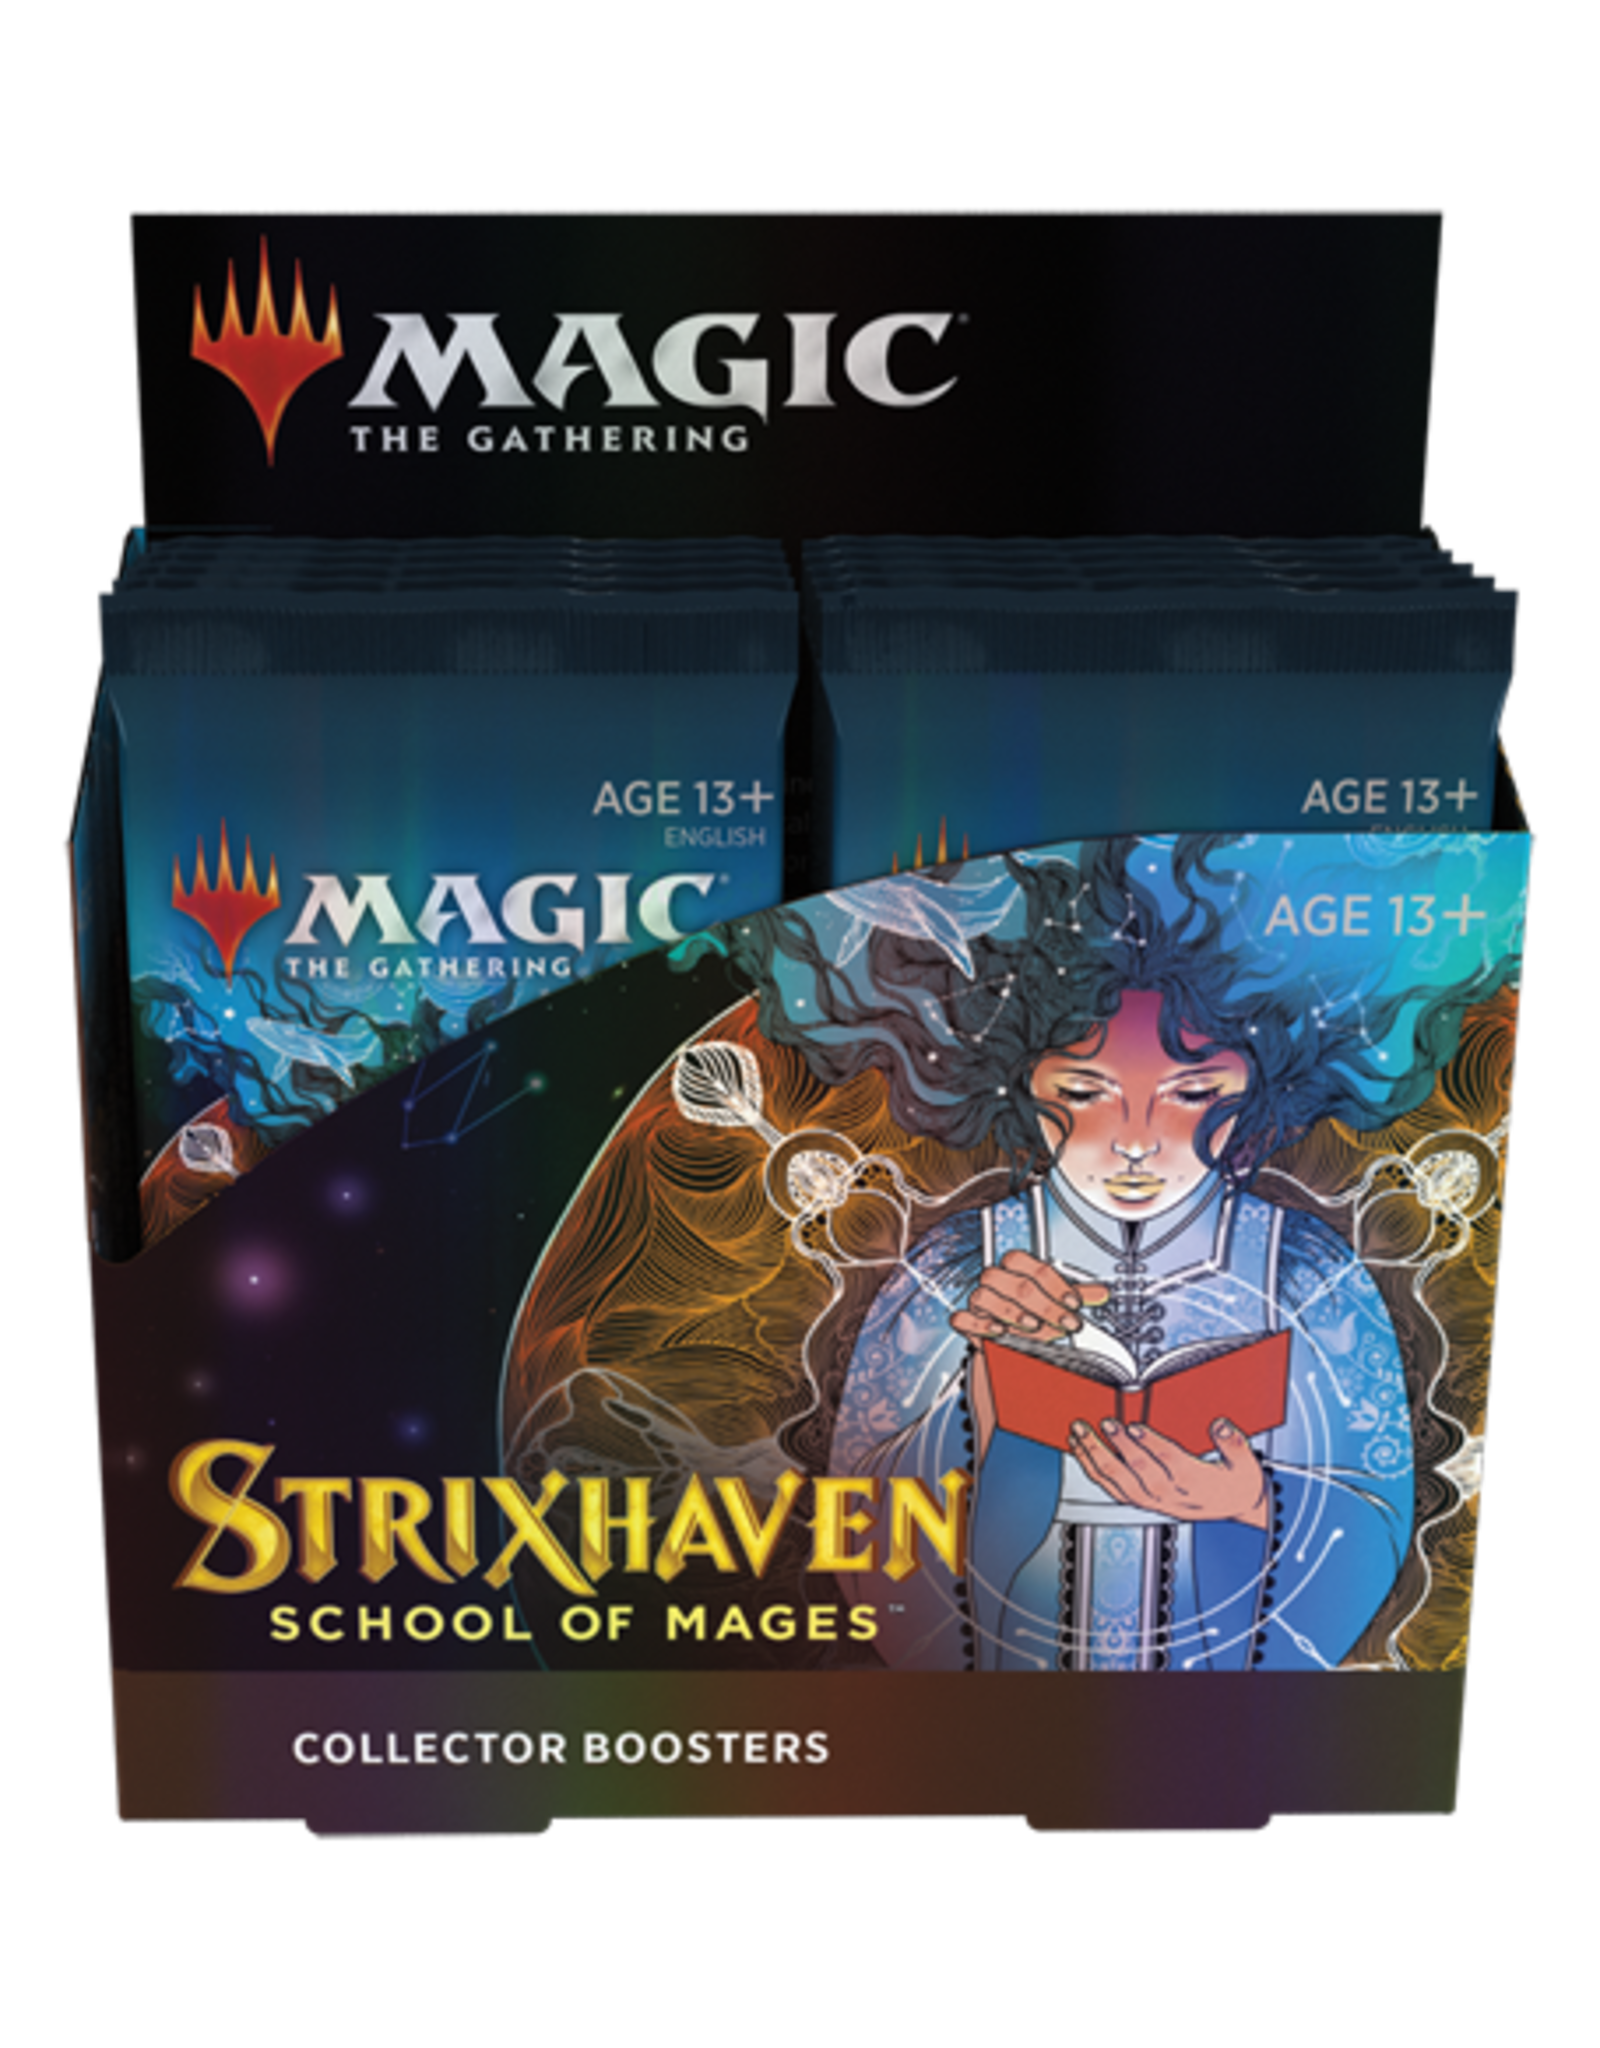 Magic Strixhaven Collector Booster Box